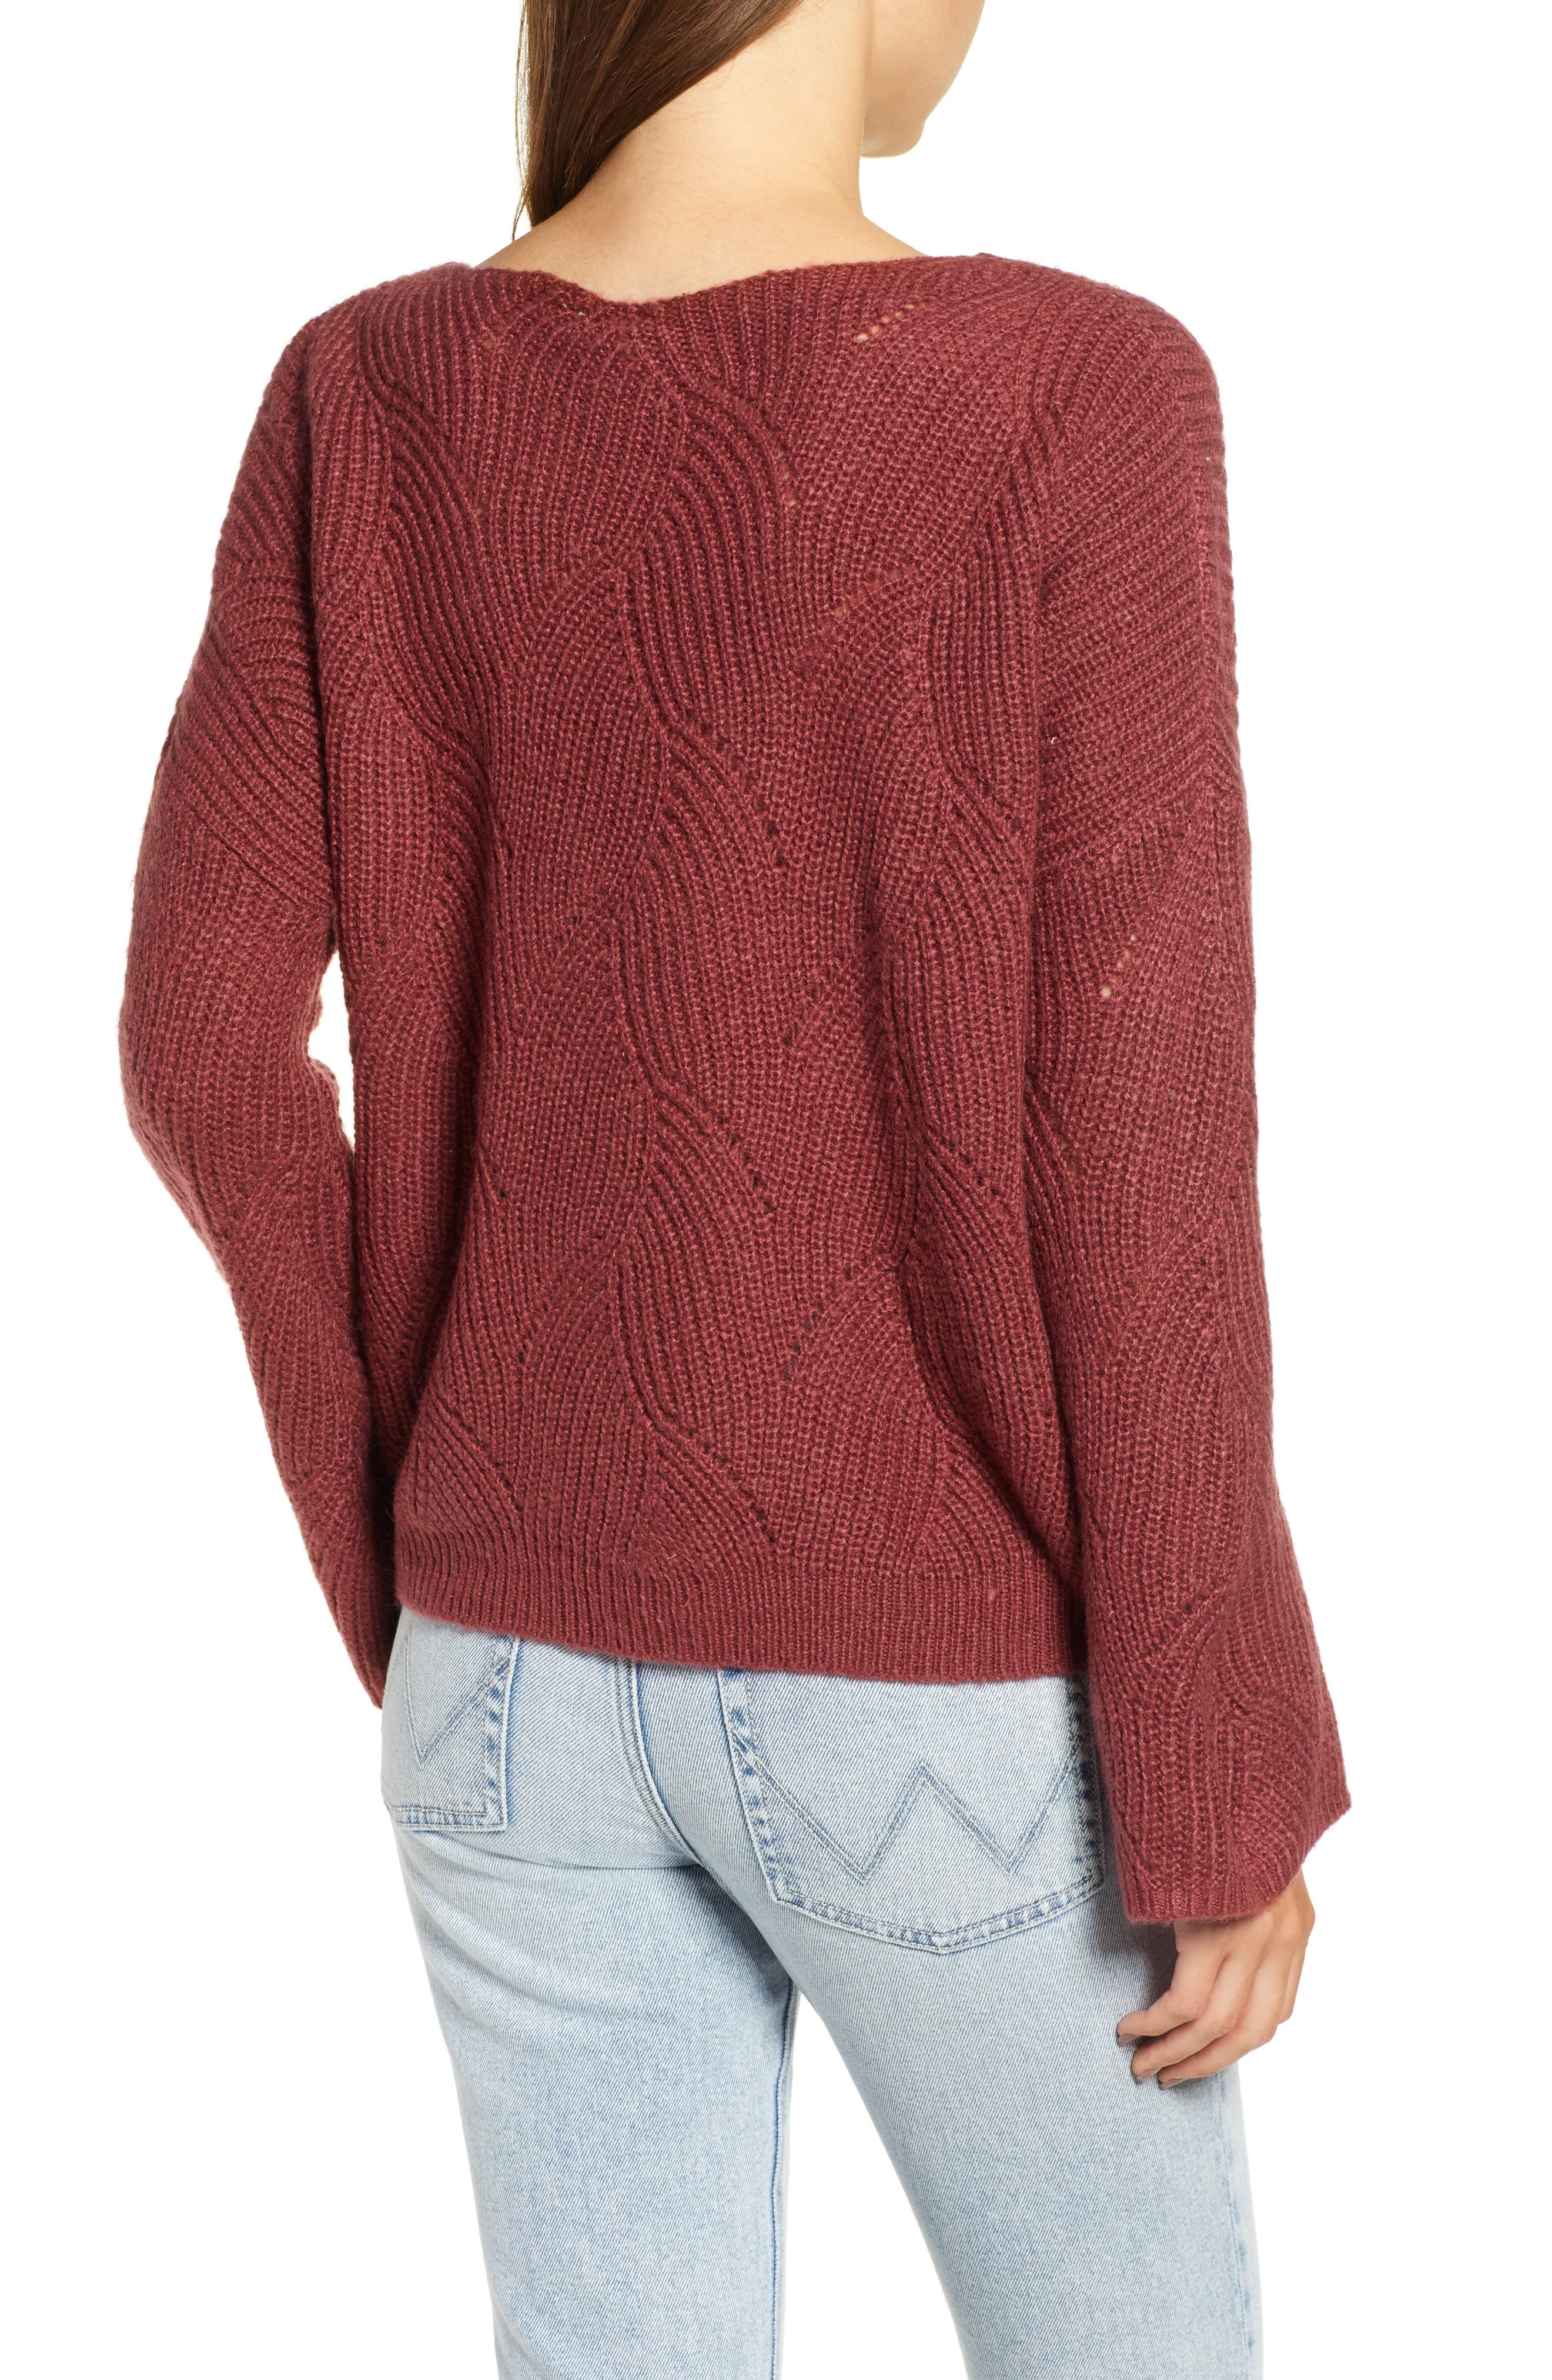 ROXY,                             See You In Bali Sweater,                             Alternate thumbnail 2, color,                             600